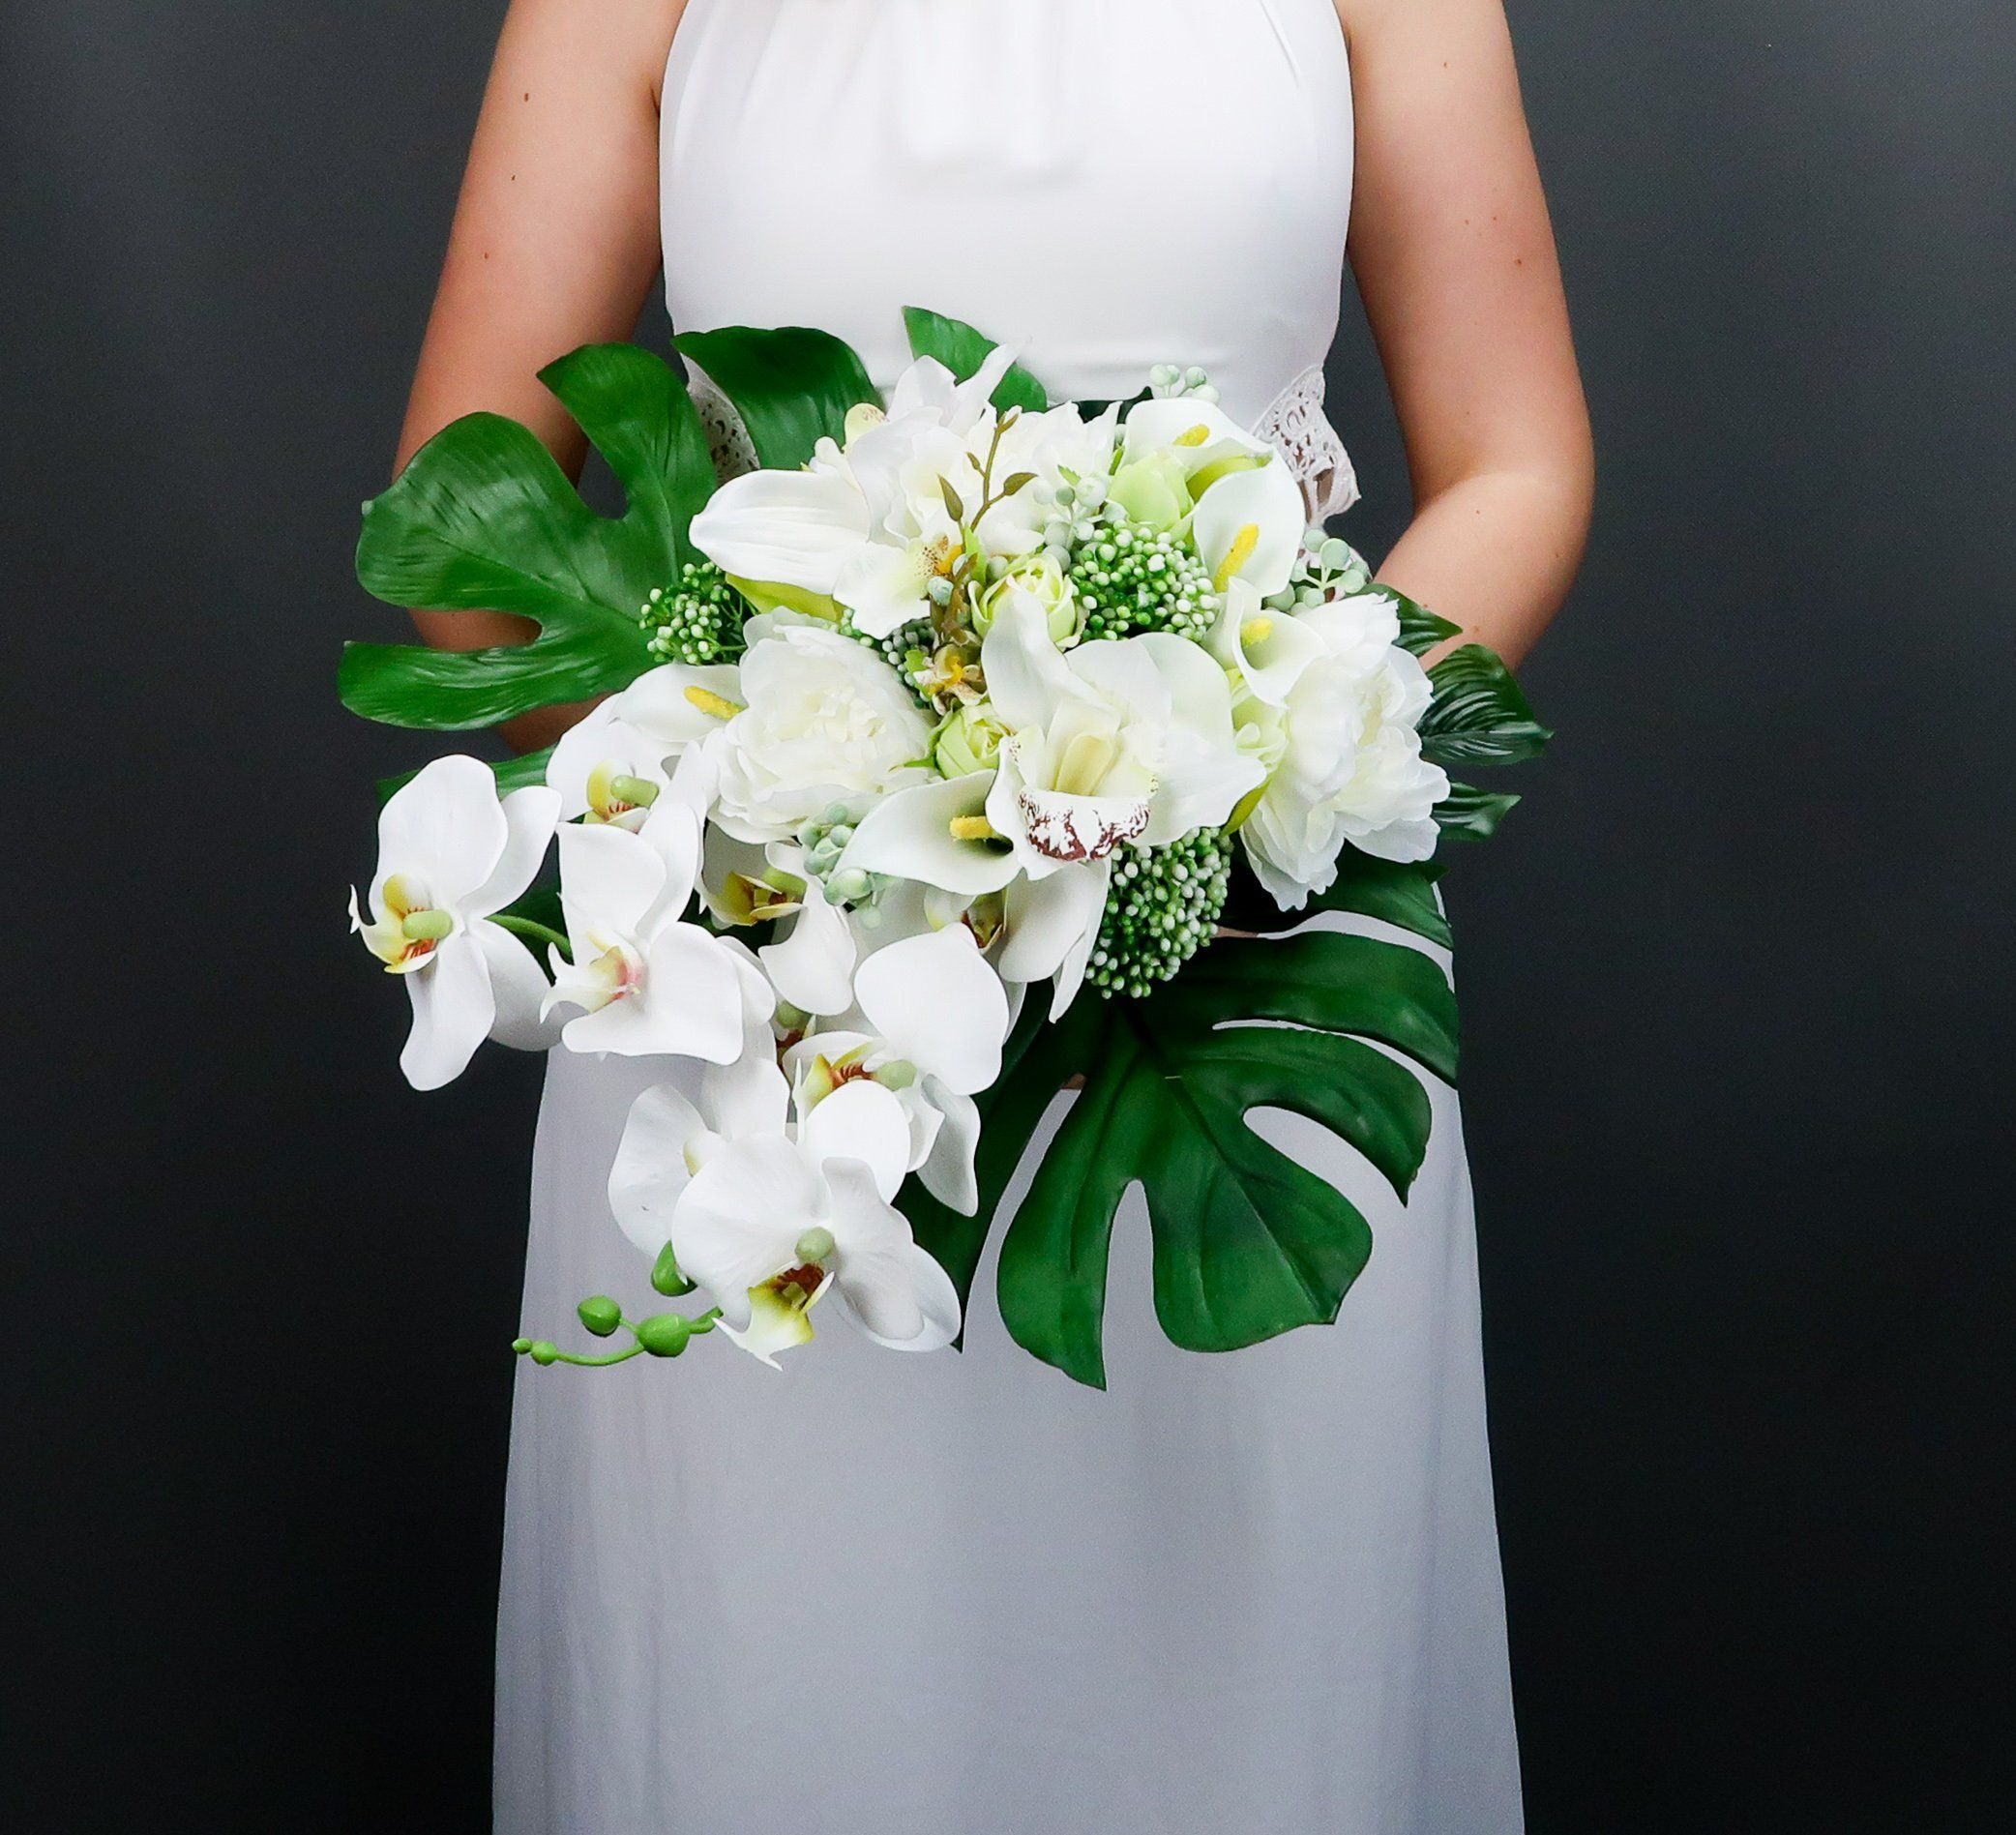 Tropical Wedding Bouquet With White Orchids And Greenery Large